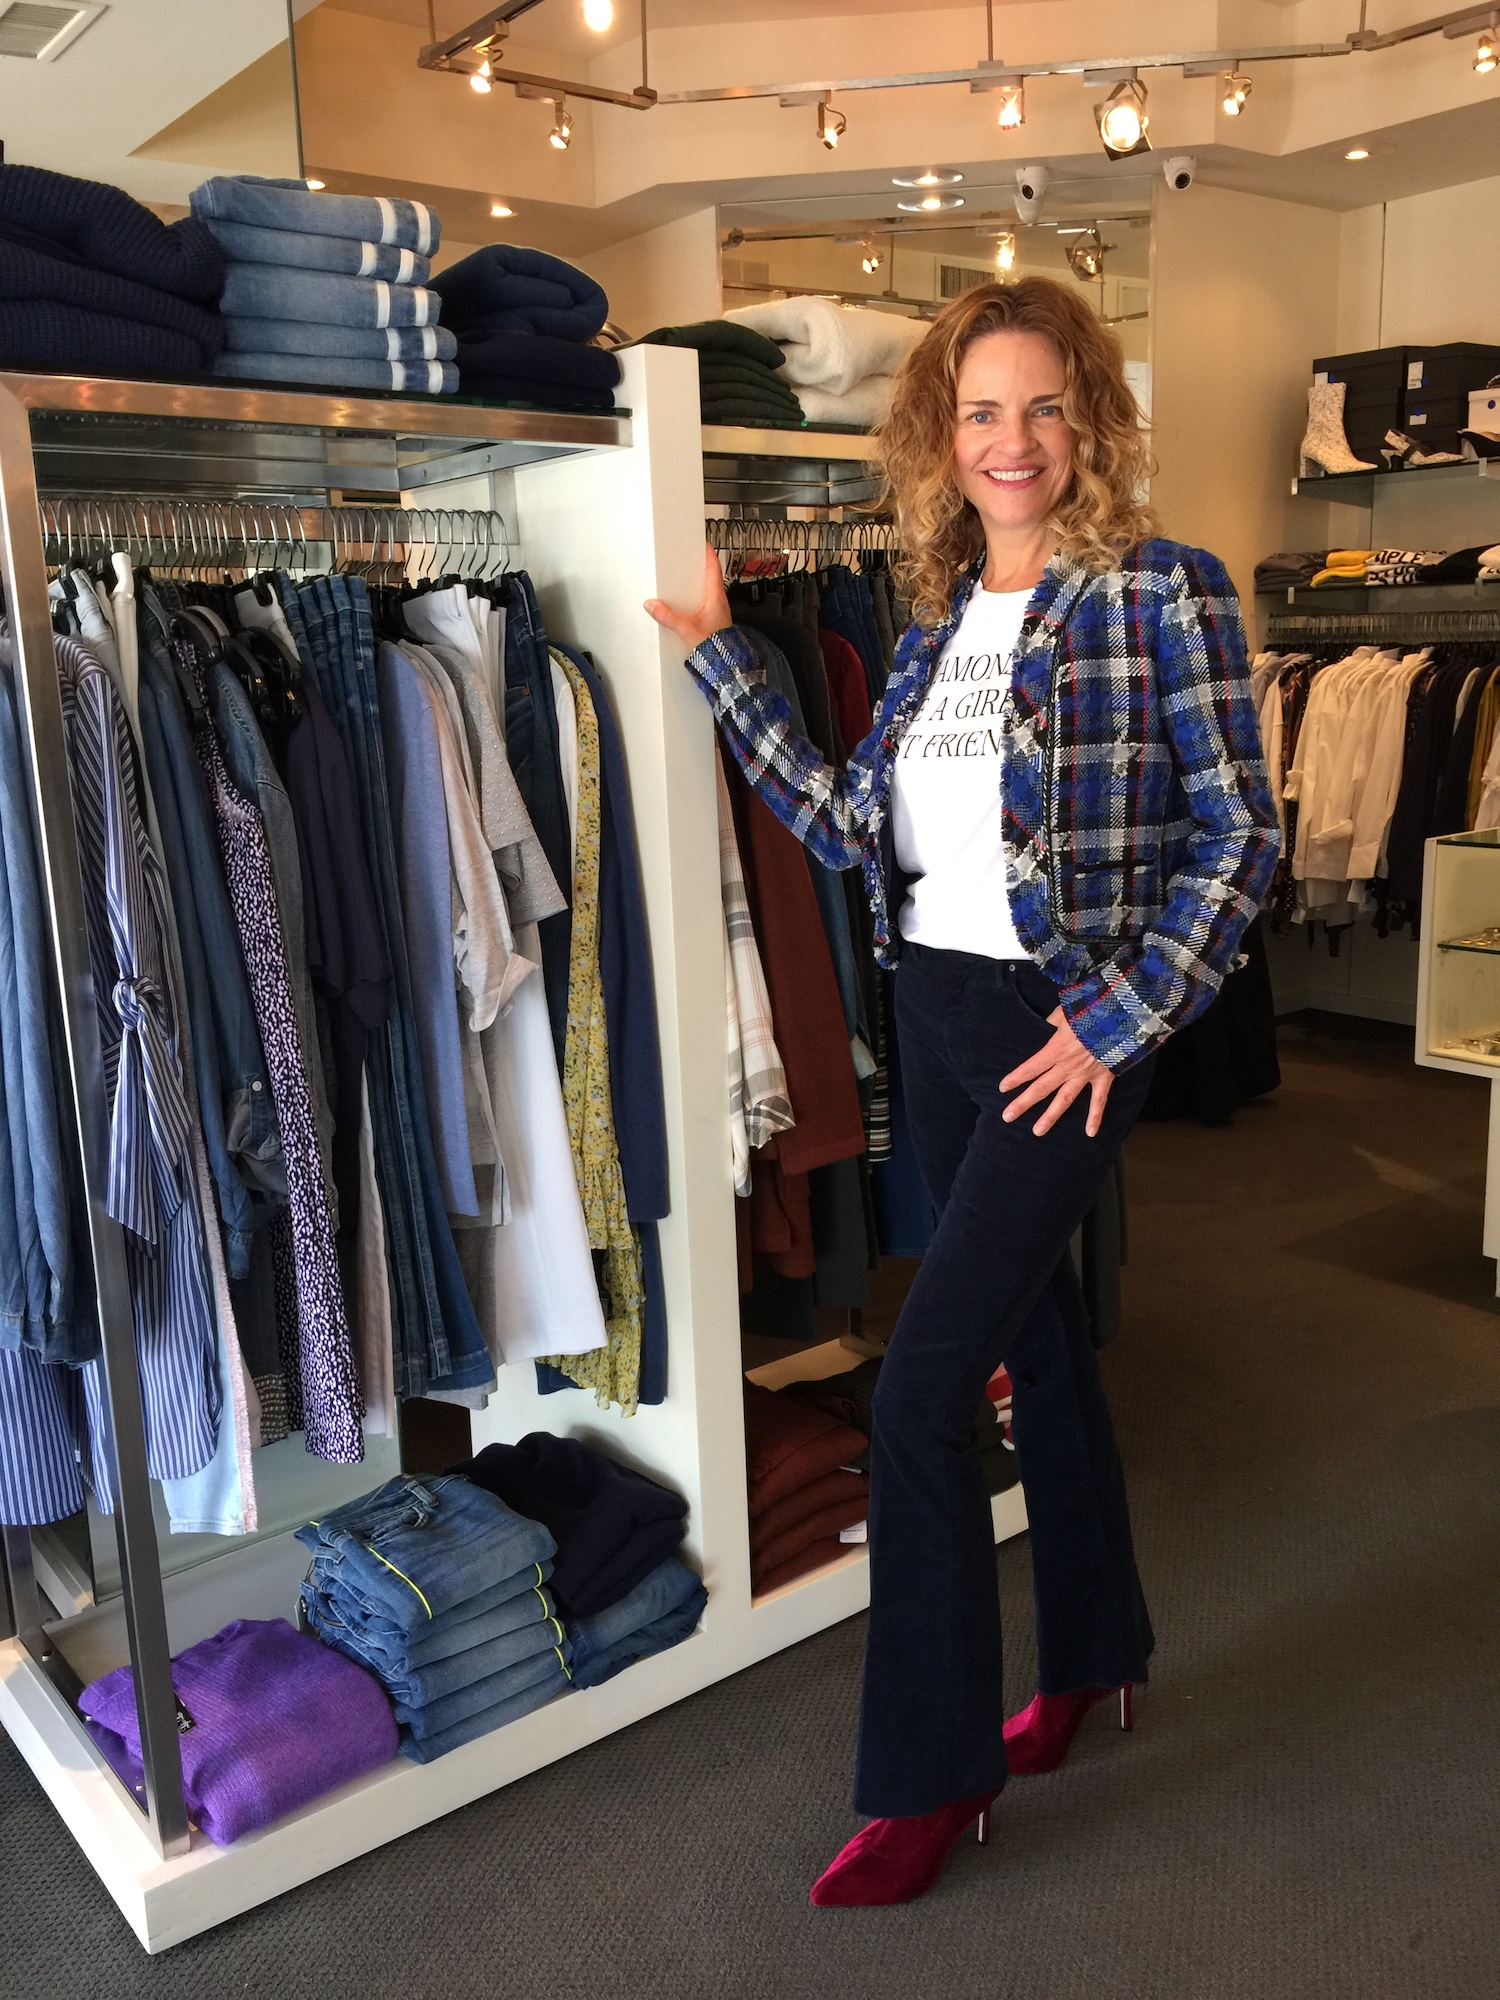 This plaid blazer is fun, classy and chic all at once and pairs beautifully with dark denim or structured black pants. Alice & Olivia blazer, available at Tocca Finita, $ 595.